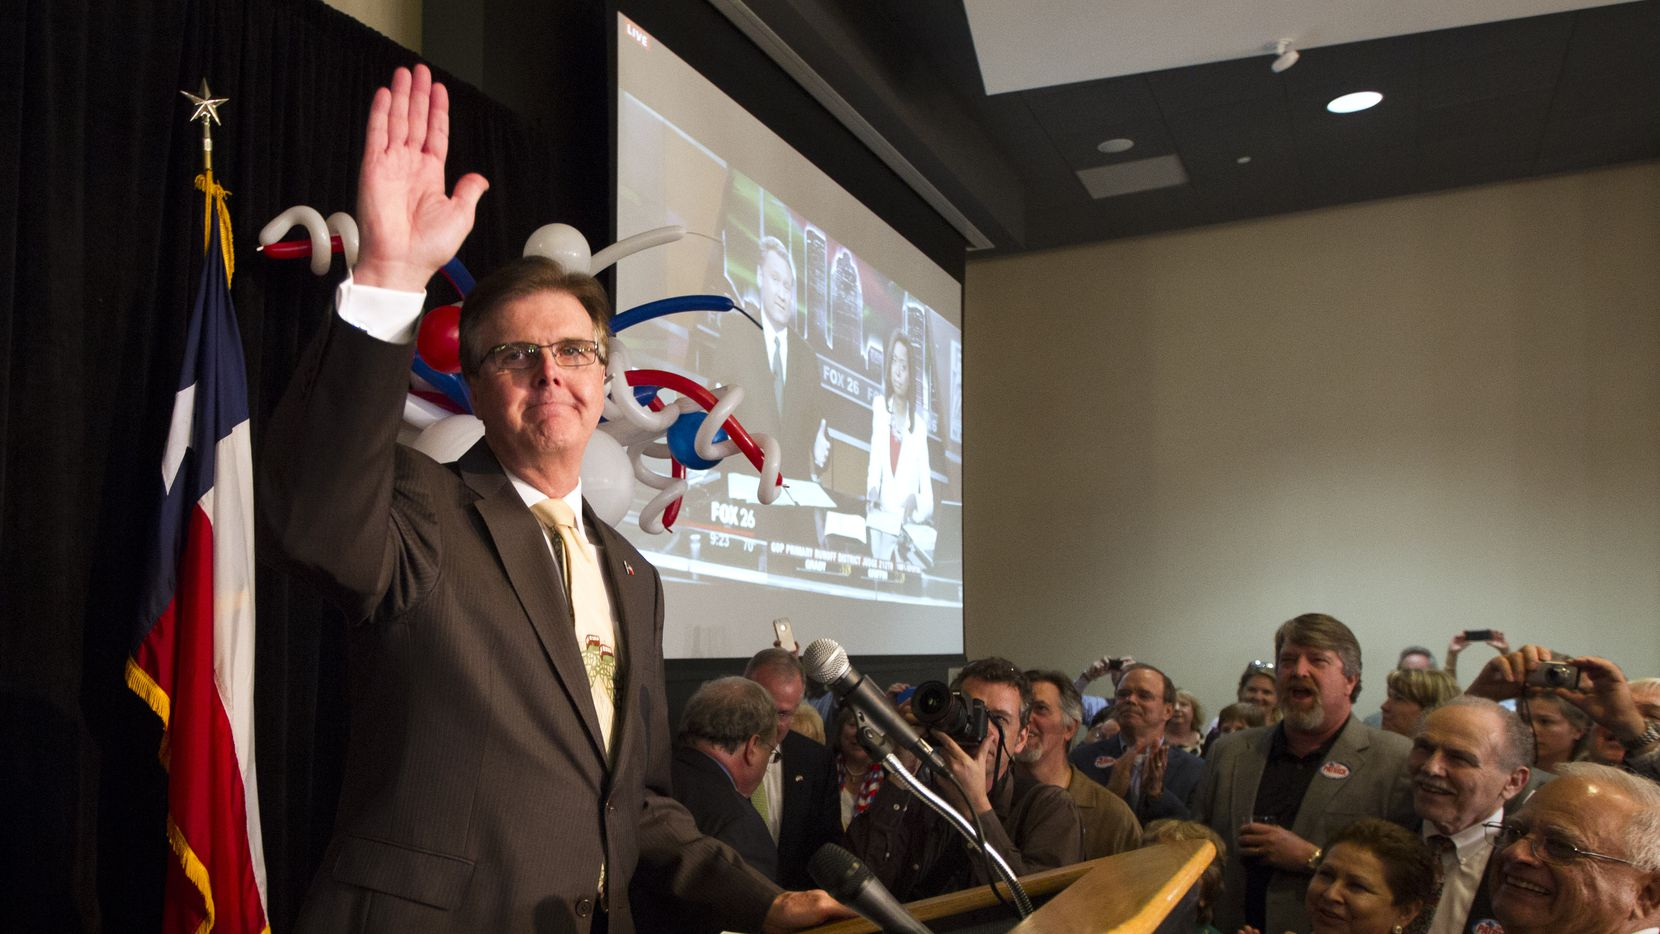 """A victorious Dan Patrick, addressing supporters in Houston on Tuesday, said """"If the Democrats think that they're going to bring Obama liberalism to Texas and win, they have a long, cold day in November ahead of them."""""""